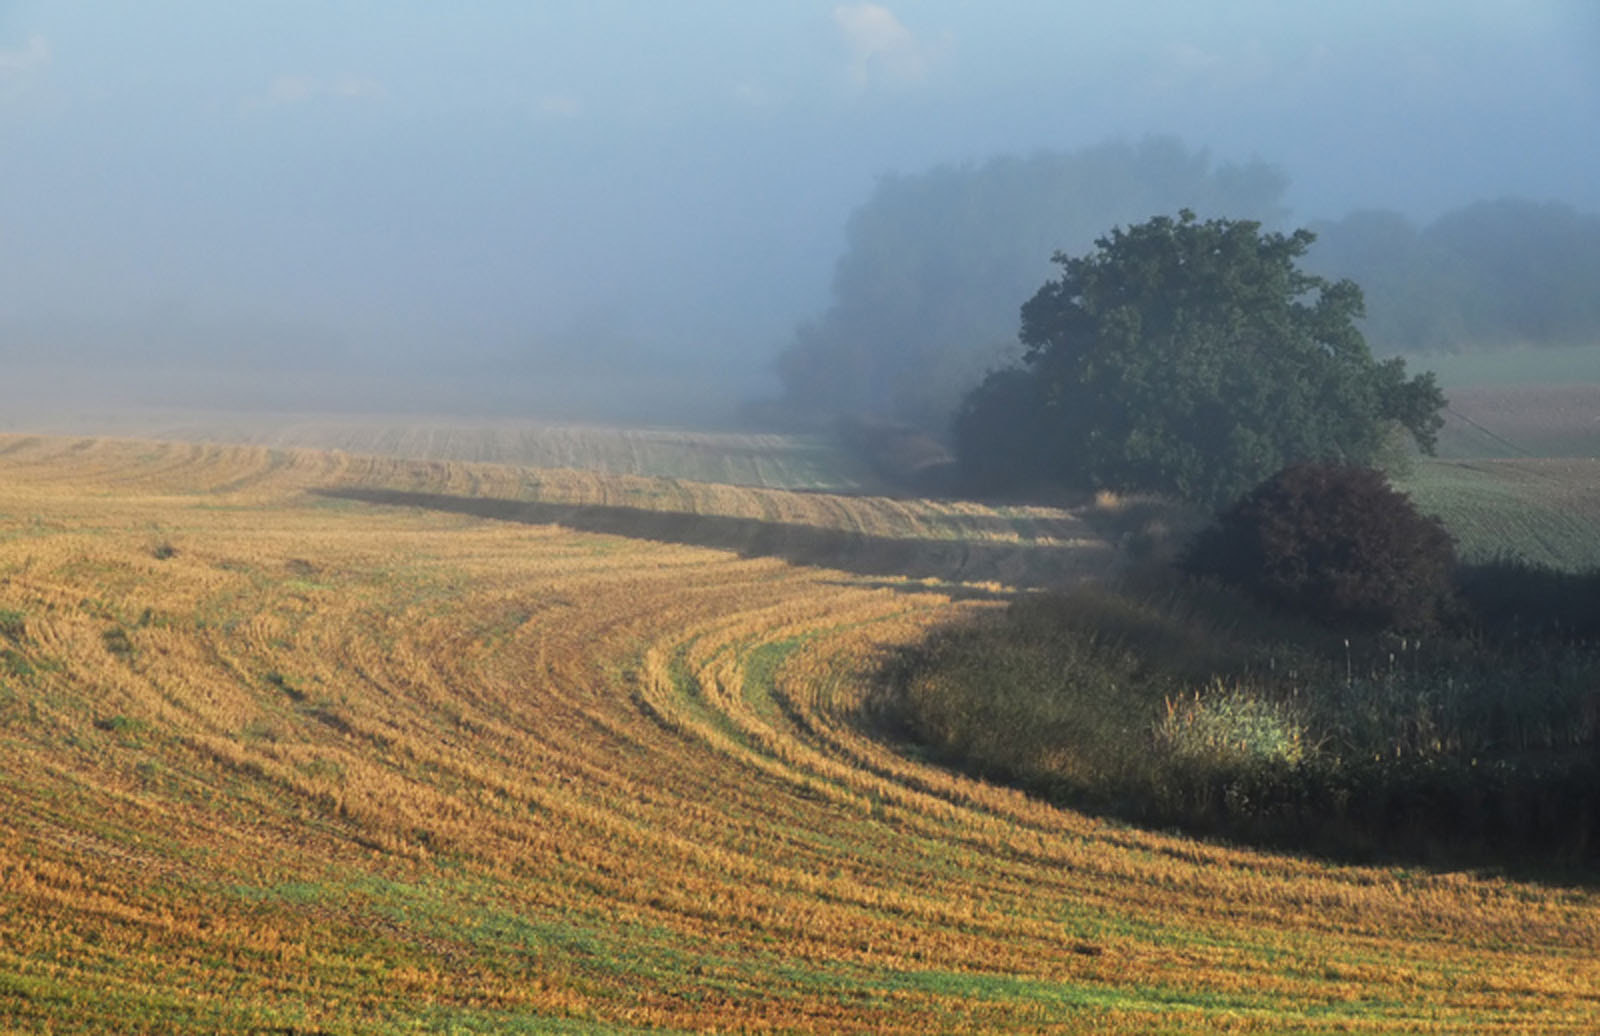 Photograph The fields at dawn by Heather Thorsen on 500px